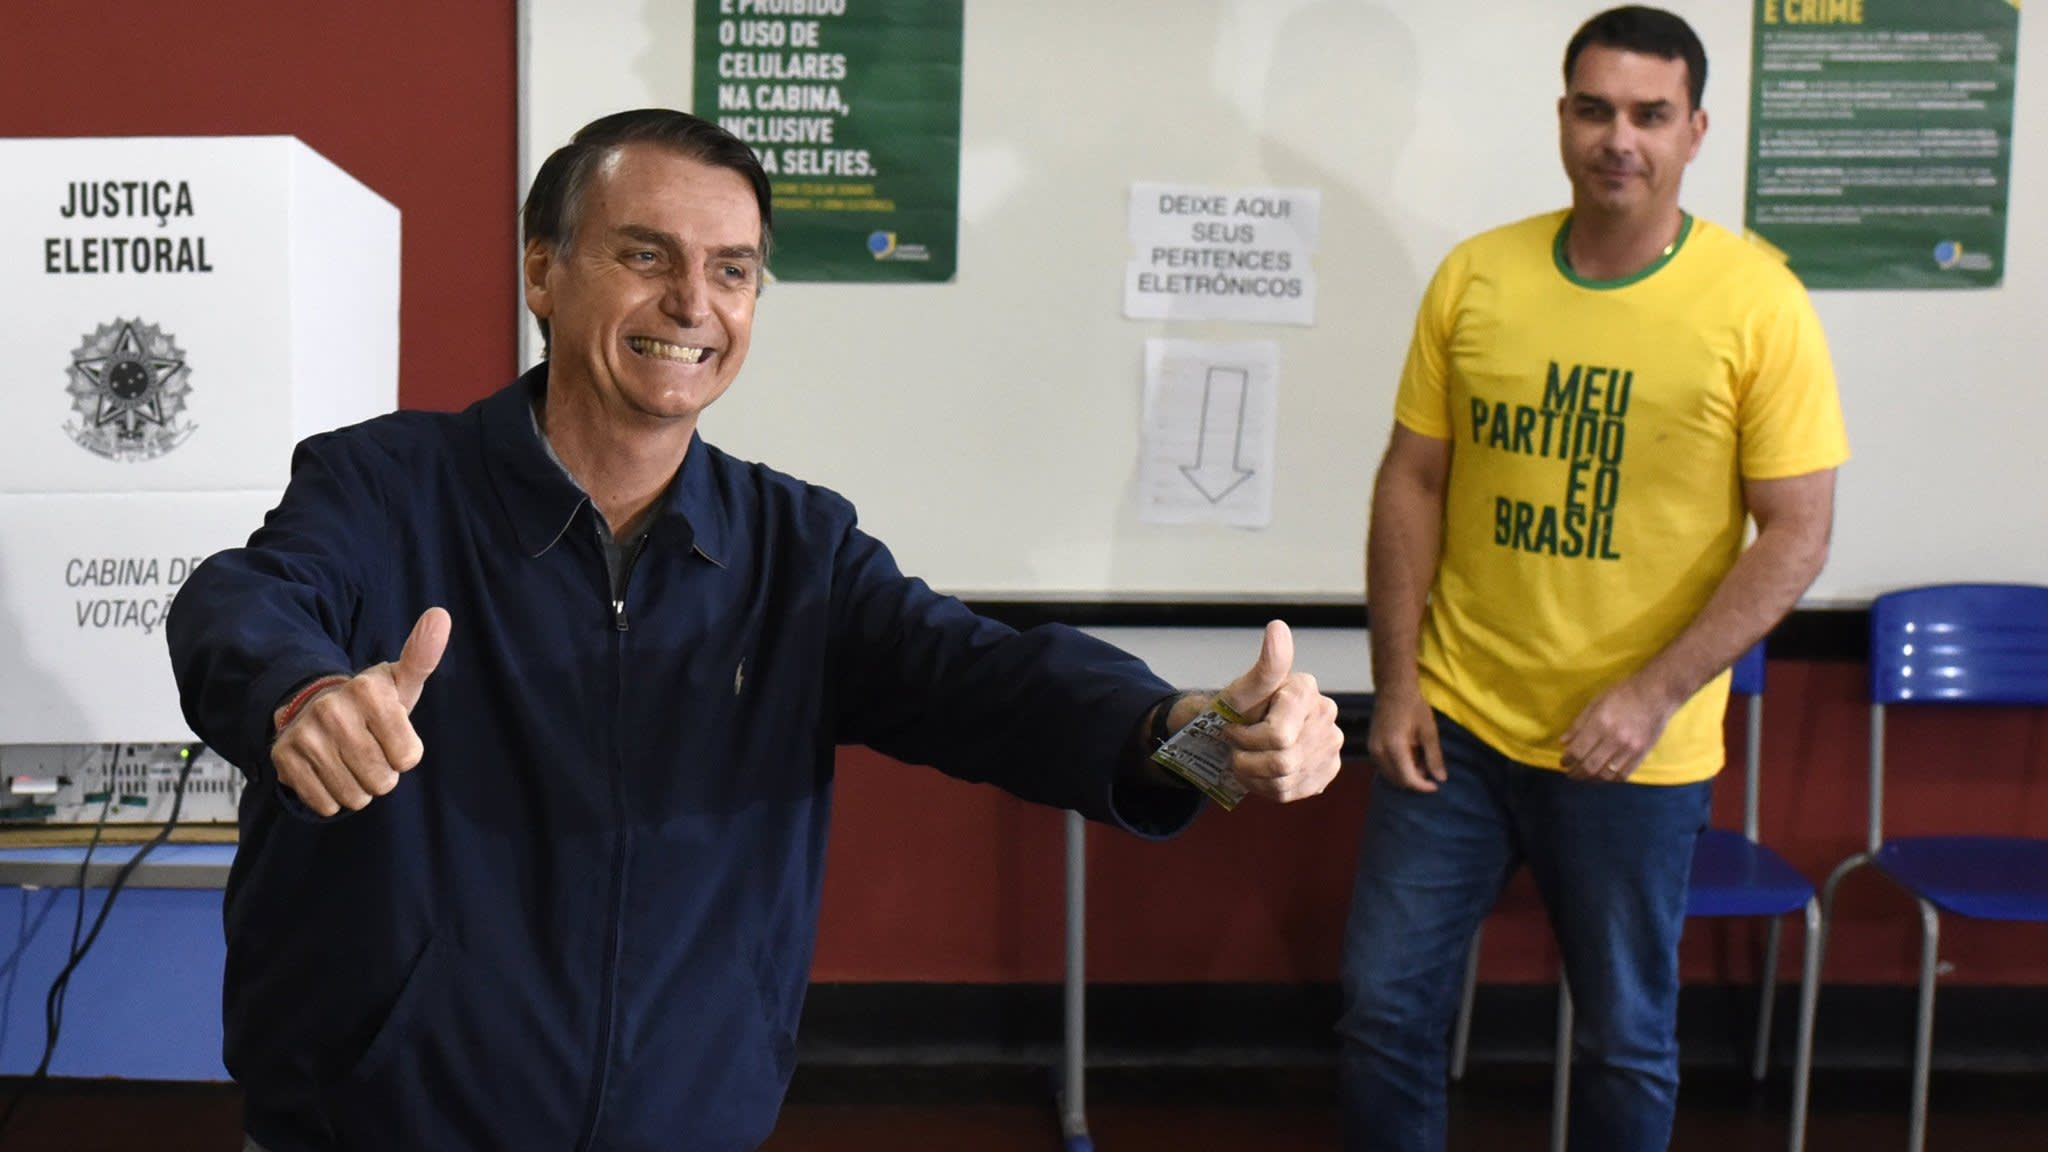 After victory, Brazil's rightwing Bolsonaro looks to centre in bid for votes